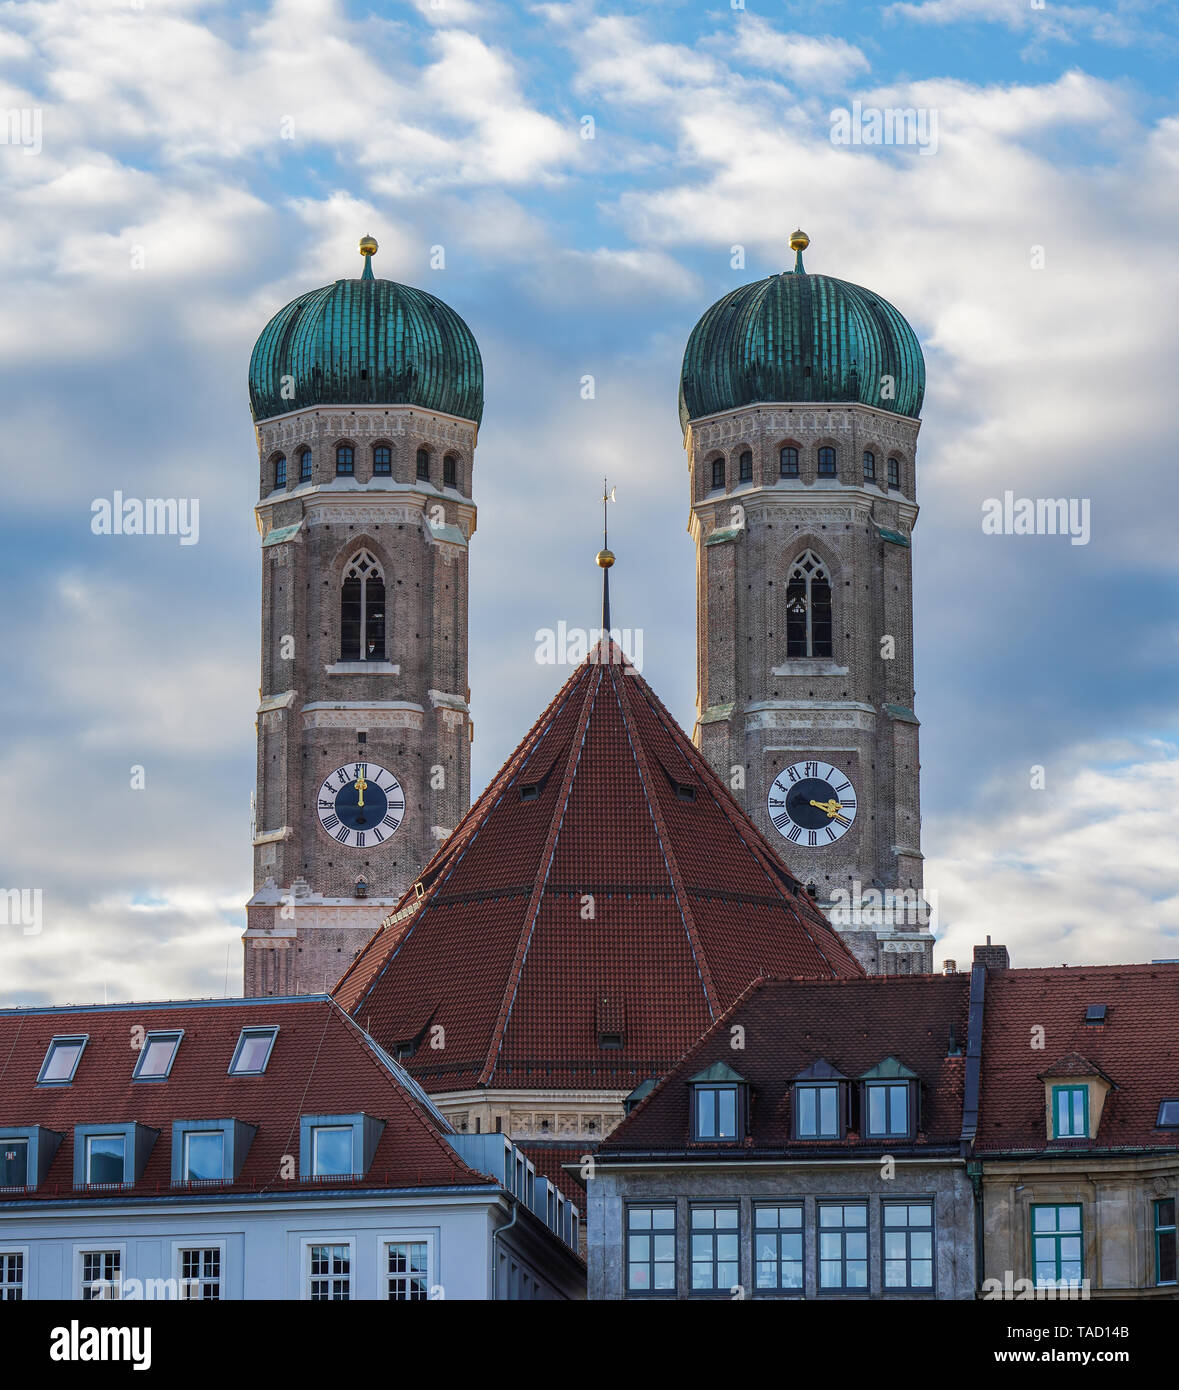 Picturesque cityscape view with the famous Munich Cathedral, also called Cathedral of Our Dear Lady - Frauenkirche, a church and landmark of Munich th - Stock Image